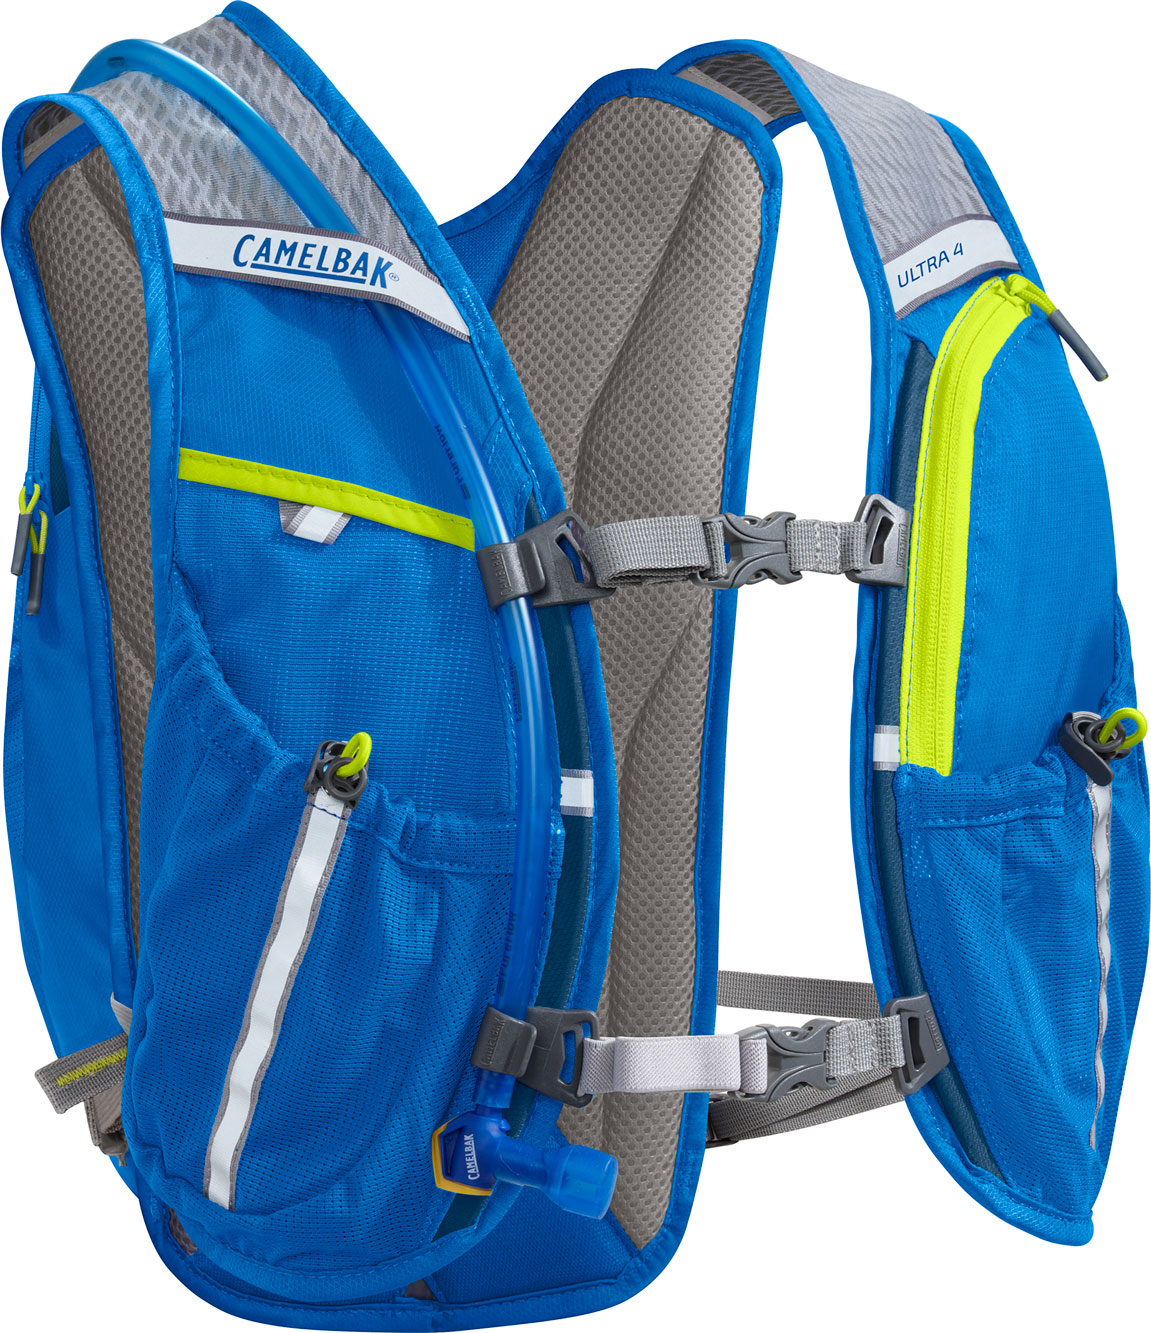 4413cf304e CamelBak Ultra 4 Run Vest - RB Cycles - Miami, FL | Ride In!!!